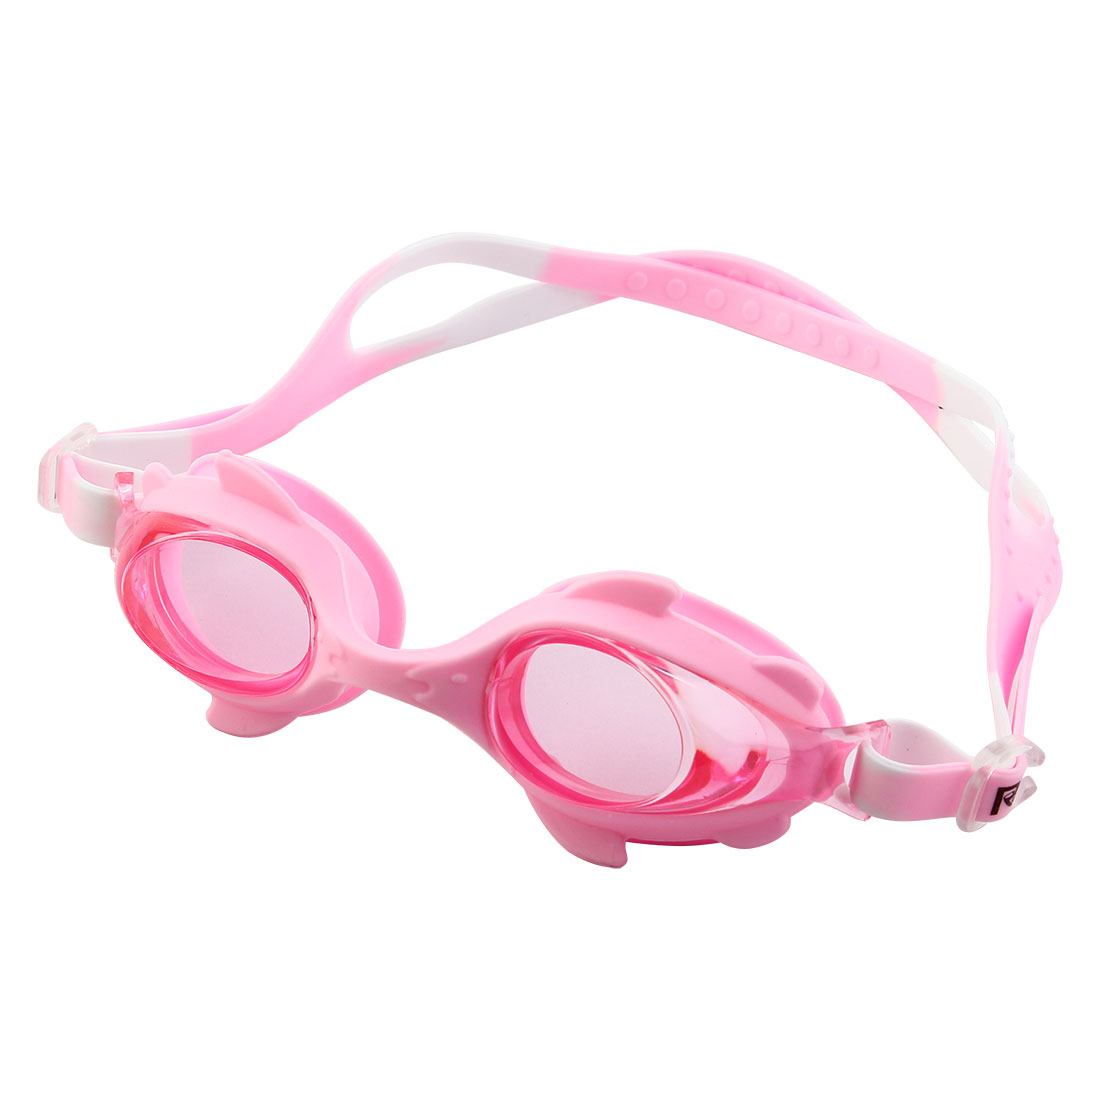 Clear Vision Anti Fog Adjustable Belt Swimming Goggles Glasses Pink for Children by